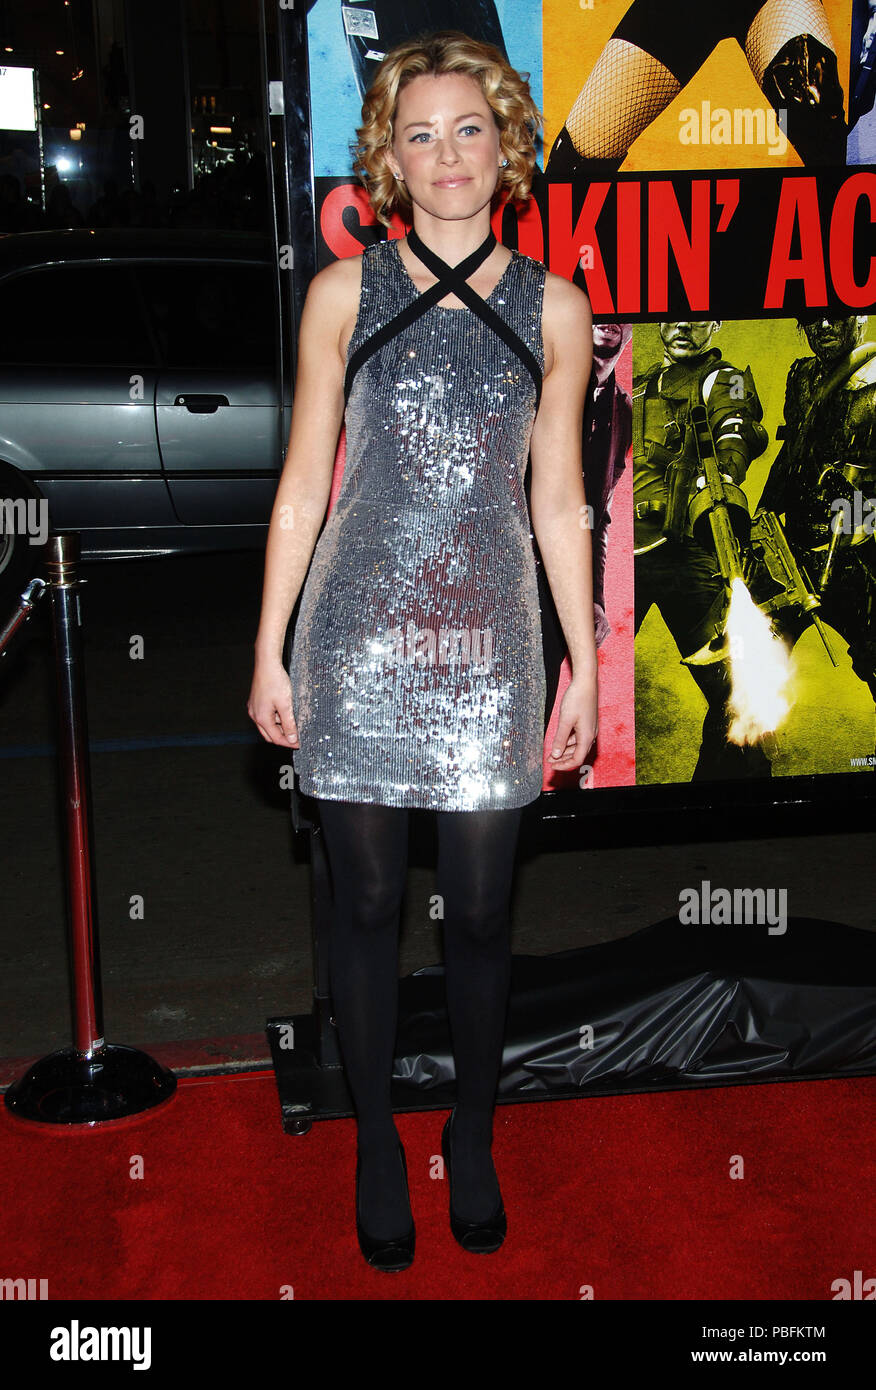 Elizabeth Banks arriving at the Smokin' Aces at the Chinese Theatre In Los Angeles. January 18, 2007.  full length silver metal dressBanksElizabeth041 Red Carpet Event, Vertical, USA, Film Industry, Celebrities,  Photography, Bestof, Arts Culture and Entertainment, Topix Celebrities fashion /  Vertical, Best of, Event in Hollywood Life - California,  Red Carpet and backstage, USA, Film Industry, Celebrities,  movie celebrities, TV celebrities, Music celebrities, Photography, Bestof, Arts Culture and Entertainment,  Topix, vertical, one person,, from the year , 2007, inquiry tsuni@Gamma-USA.com - Stock Image